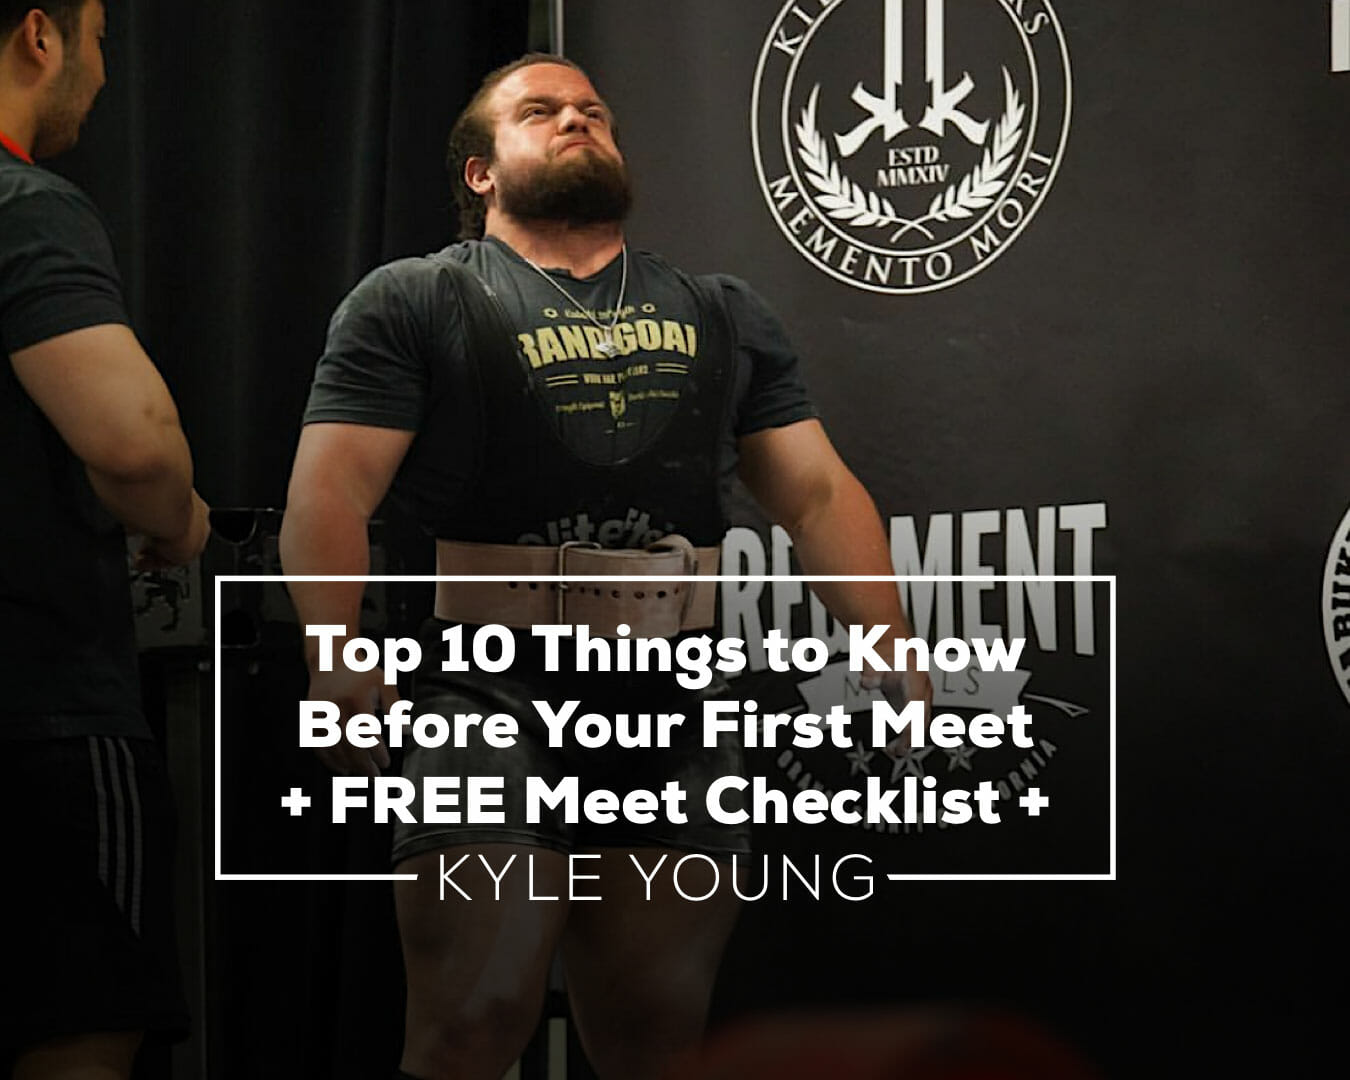 a27d0368b52aea Top 10 Things to Know Before Your First Meet - Kabuki Strength